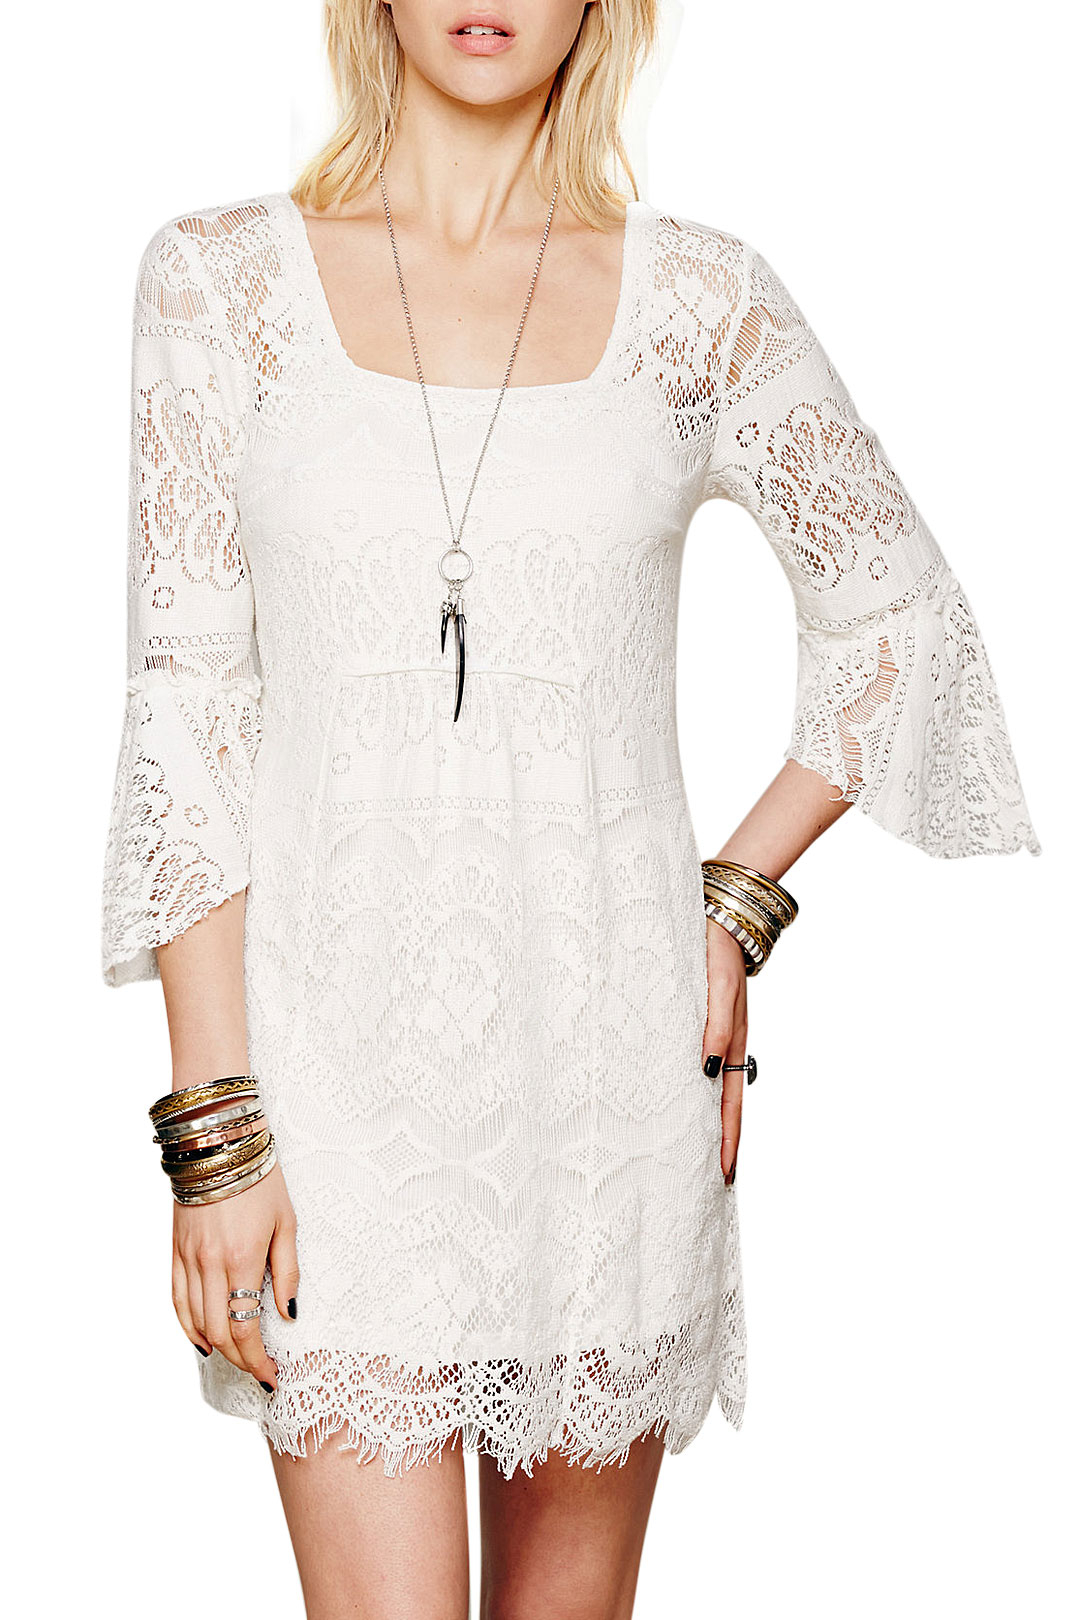 White Lined Lace Dress